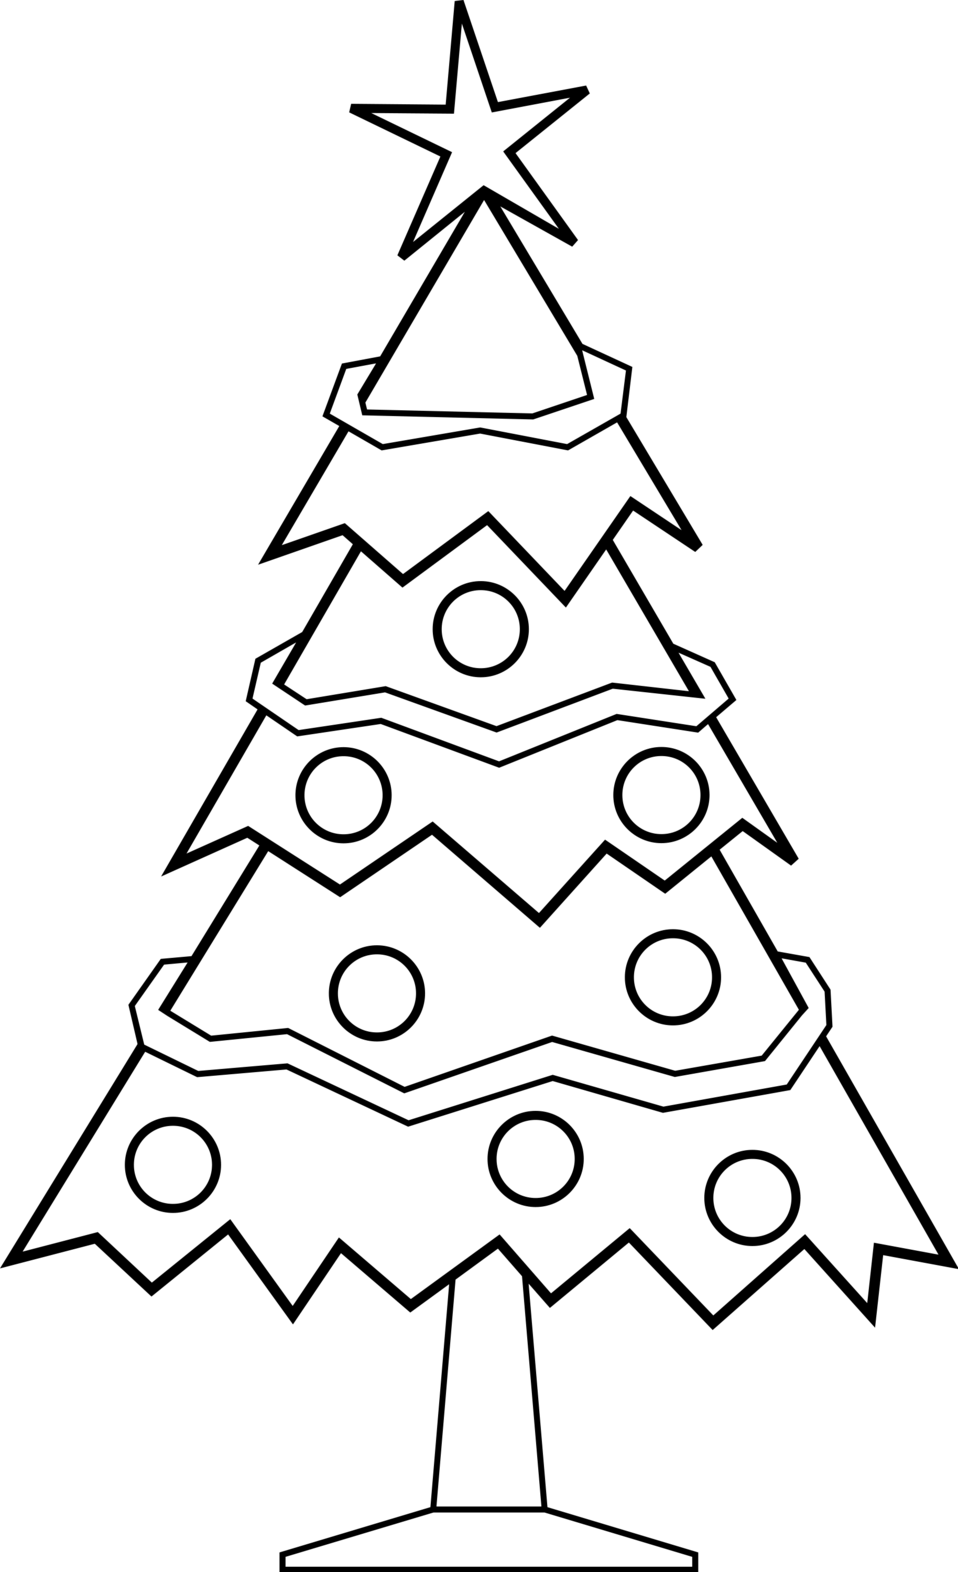 Christmas tree black clipart picture royalty free download Christmas Drawing Black And White at GetDrawings.com | Free for ... picture royalty free download